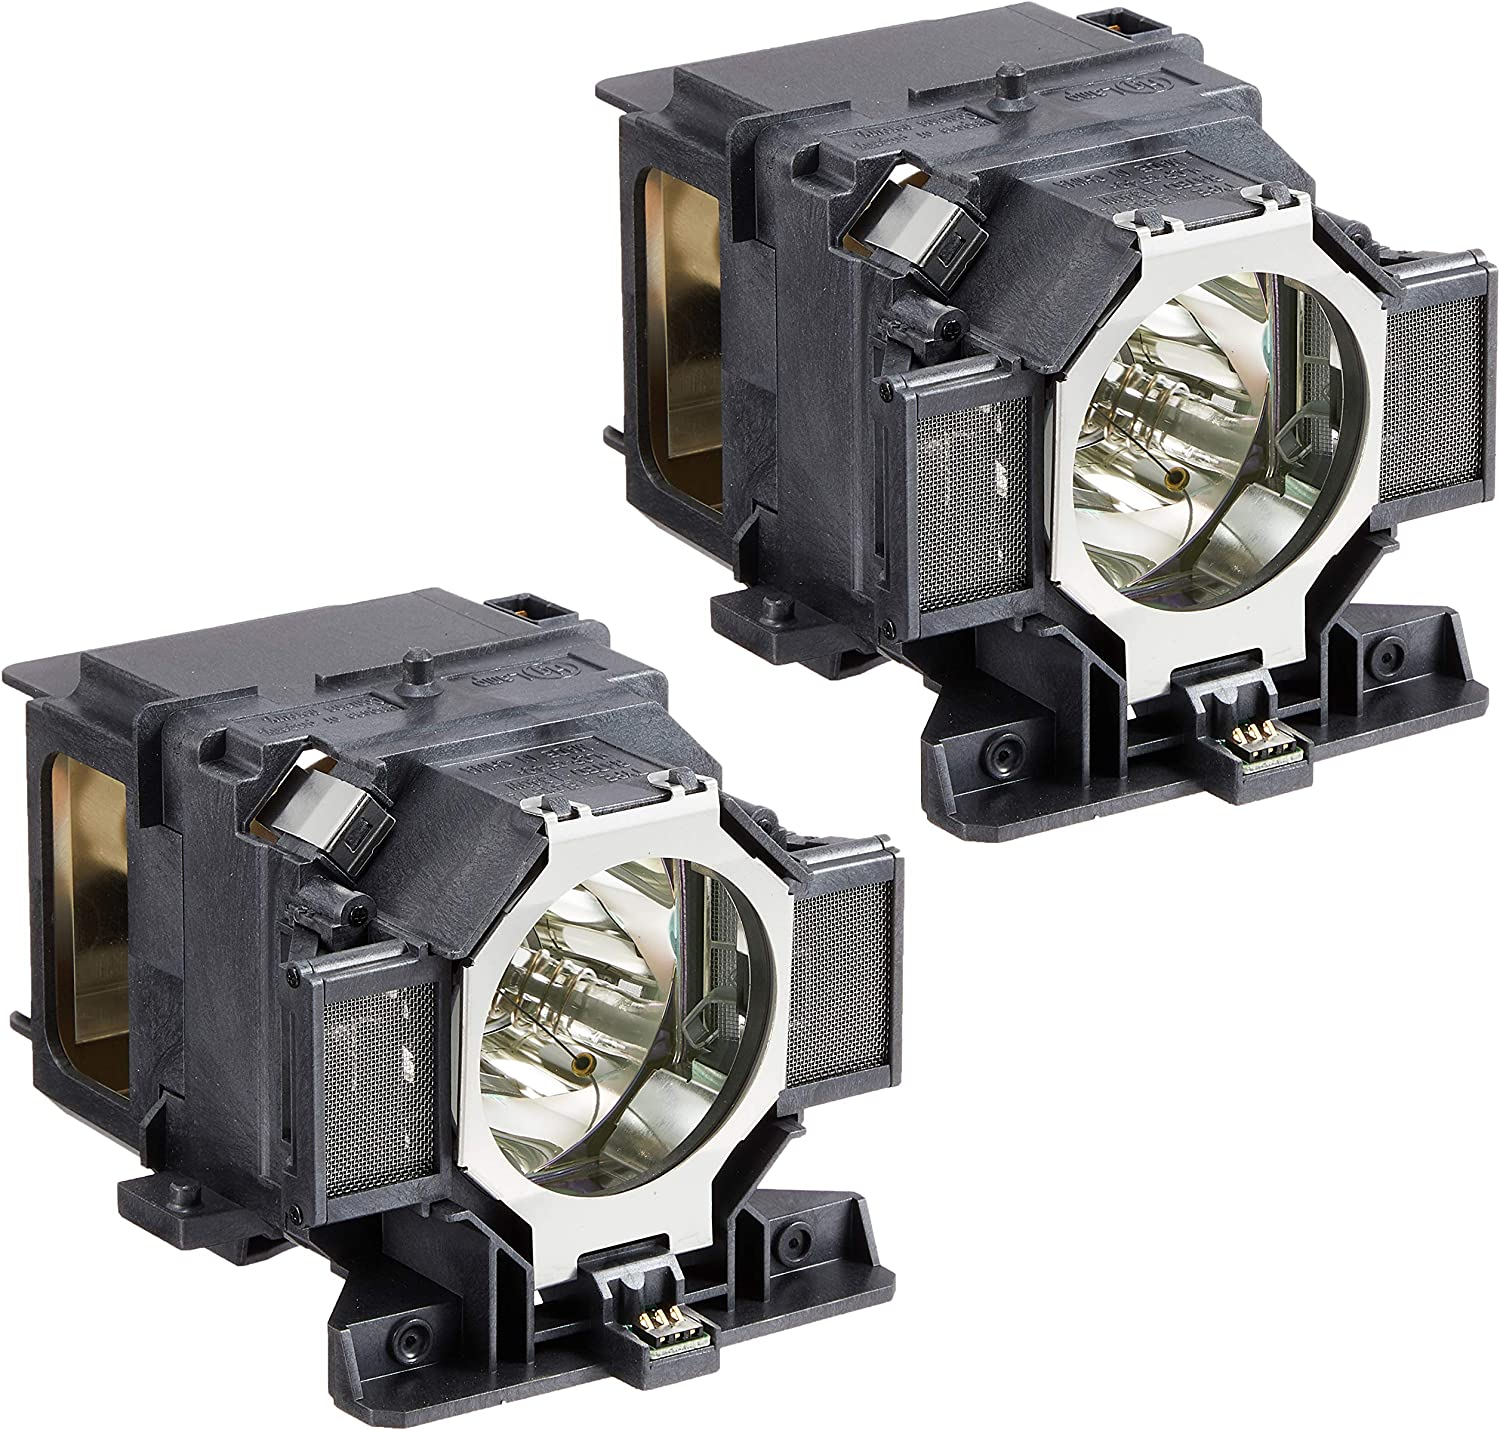 Dual ディスカウント lamp module for EPSON Projector 1000X 845XWU 835XW EB-Z8150 18%OFF